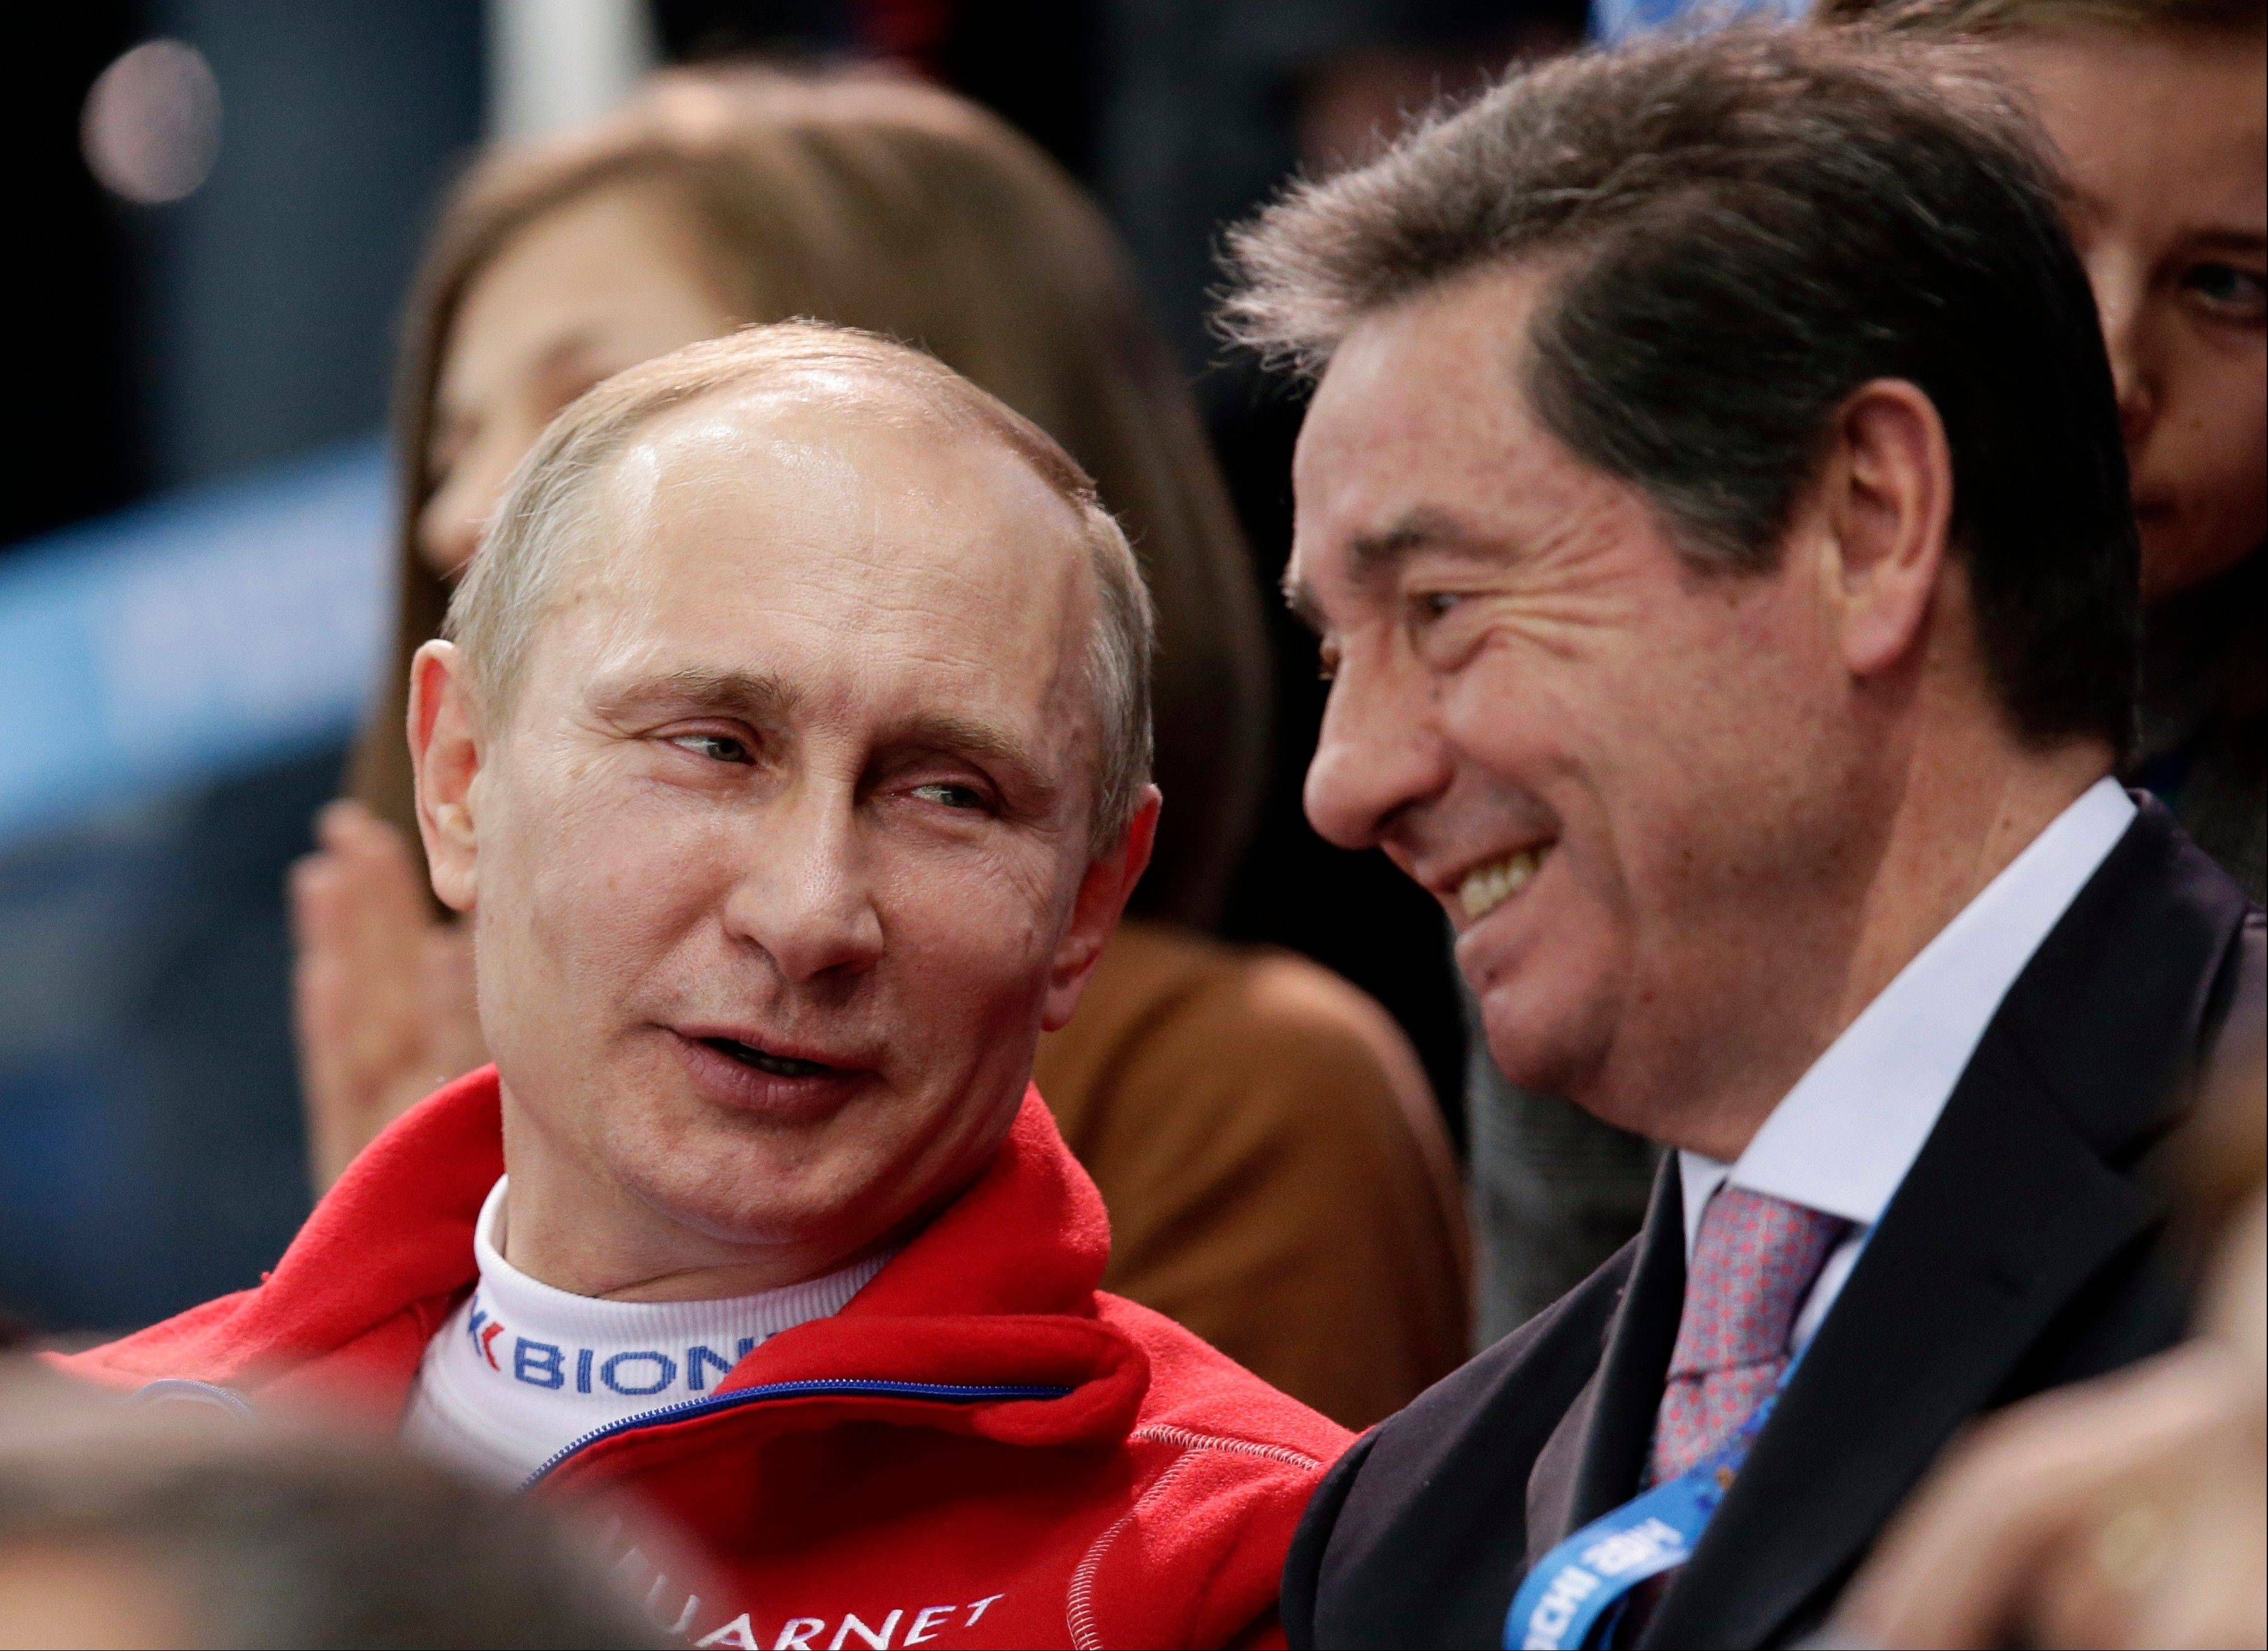 Russian President Vladimir Putin, left, speaks with International Skating Union President Ottavio Cinquanta as he attends the figure skating competition at the Iceberg Skating Palace during the 2014 Winter Olympics, Sunday, Feb. 9, 2014, in Sochi, Russia.